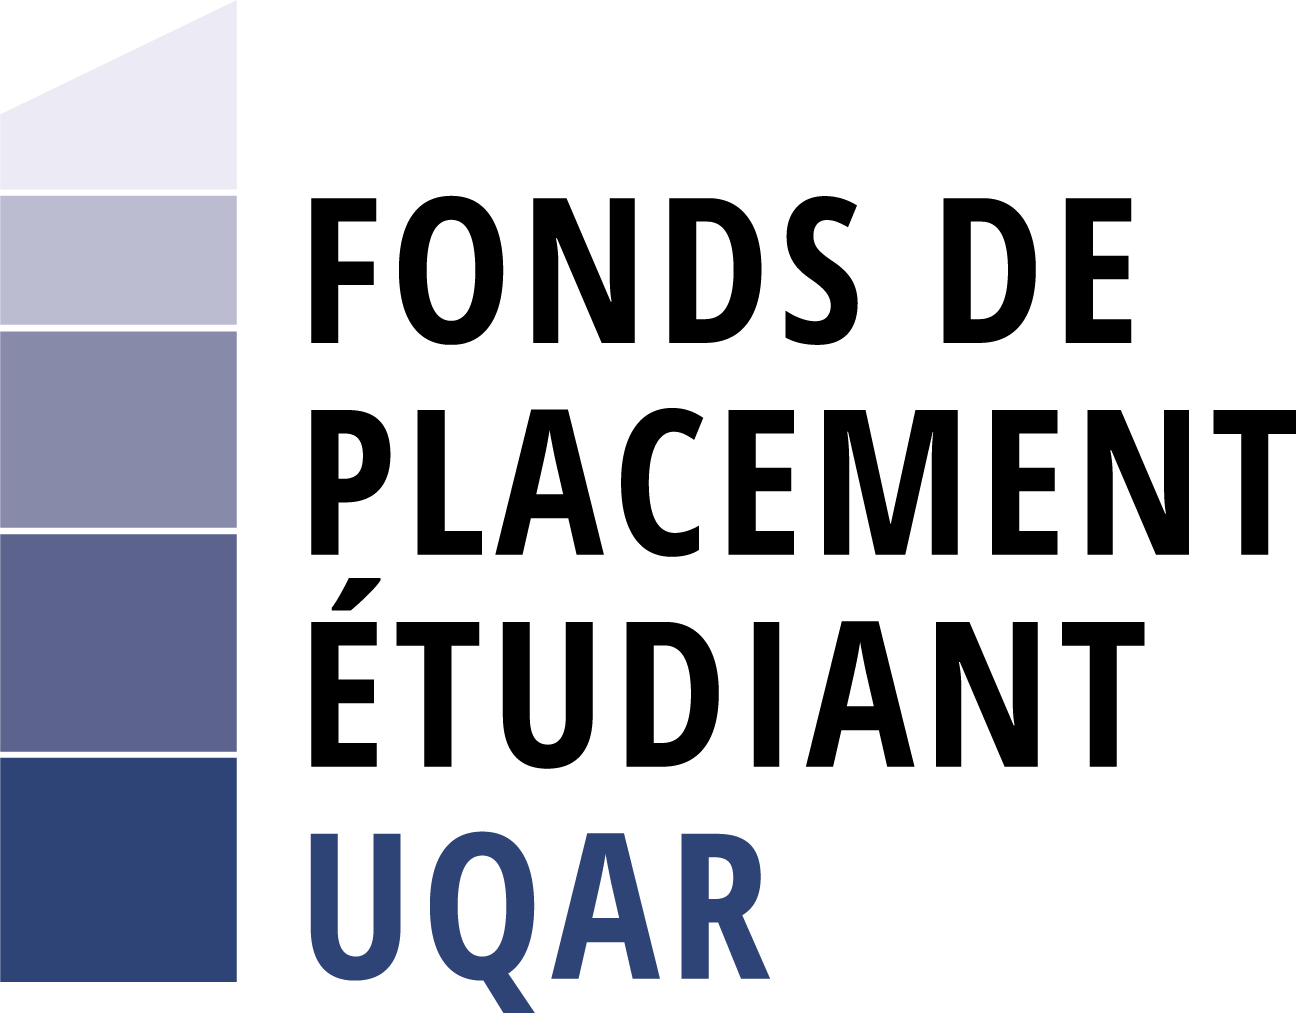 Fonds de placement étudiant UQAR